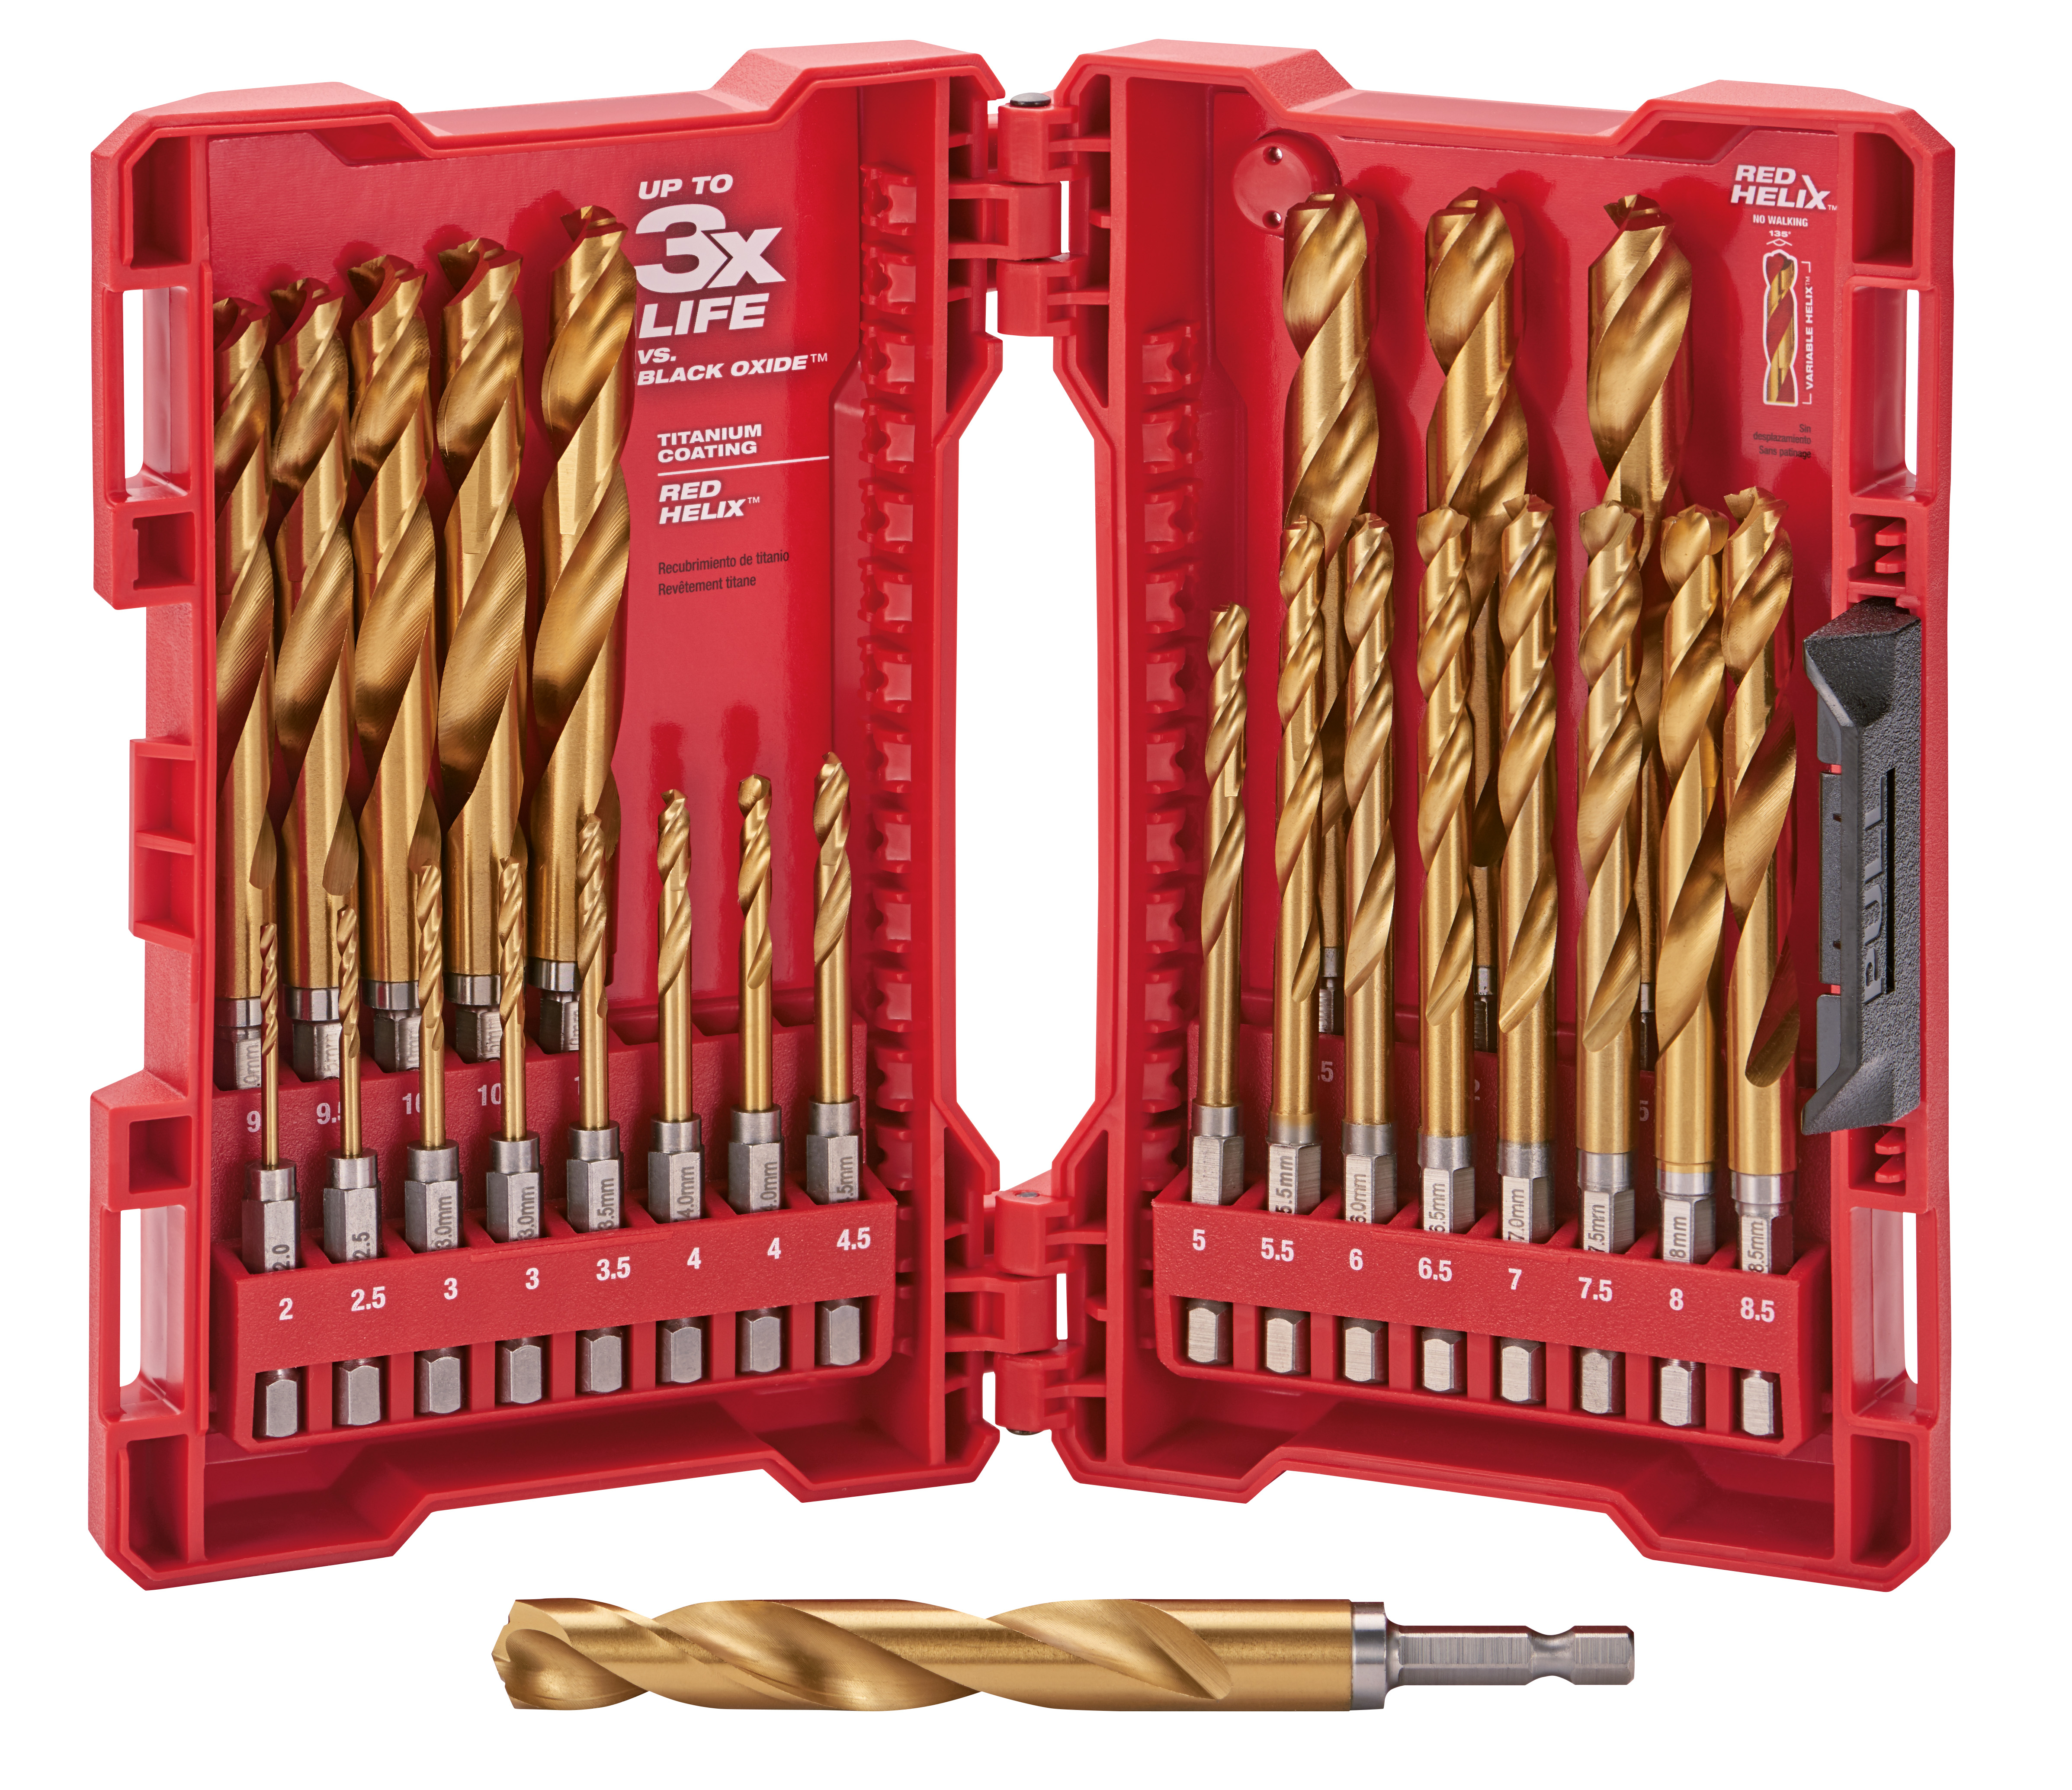 Milwaukee® SHOCKWAVE™ RED HELIX® Impact Duty® 48-89-4861 Drill Bit Set, 2 mm Min Drill Bit, 13 mm Max Drill Bit, 135 deg Drill Point Angle, 25 Pieces, Titanium Coated